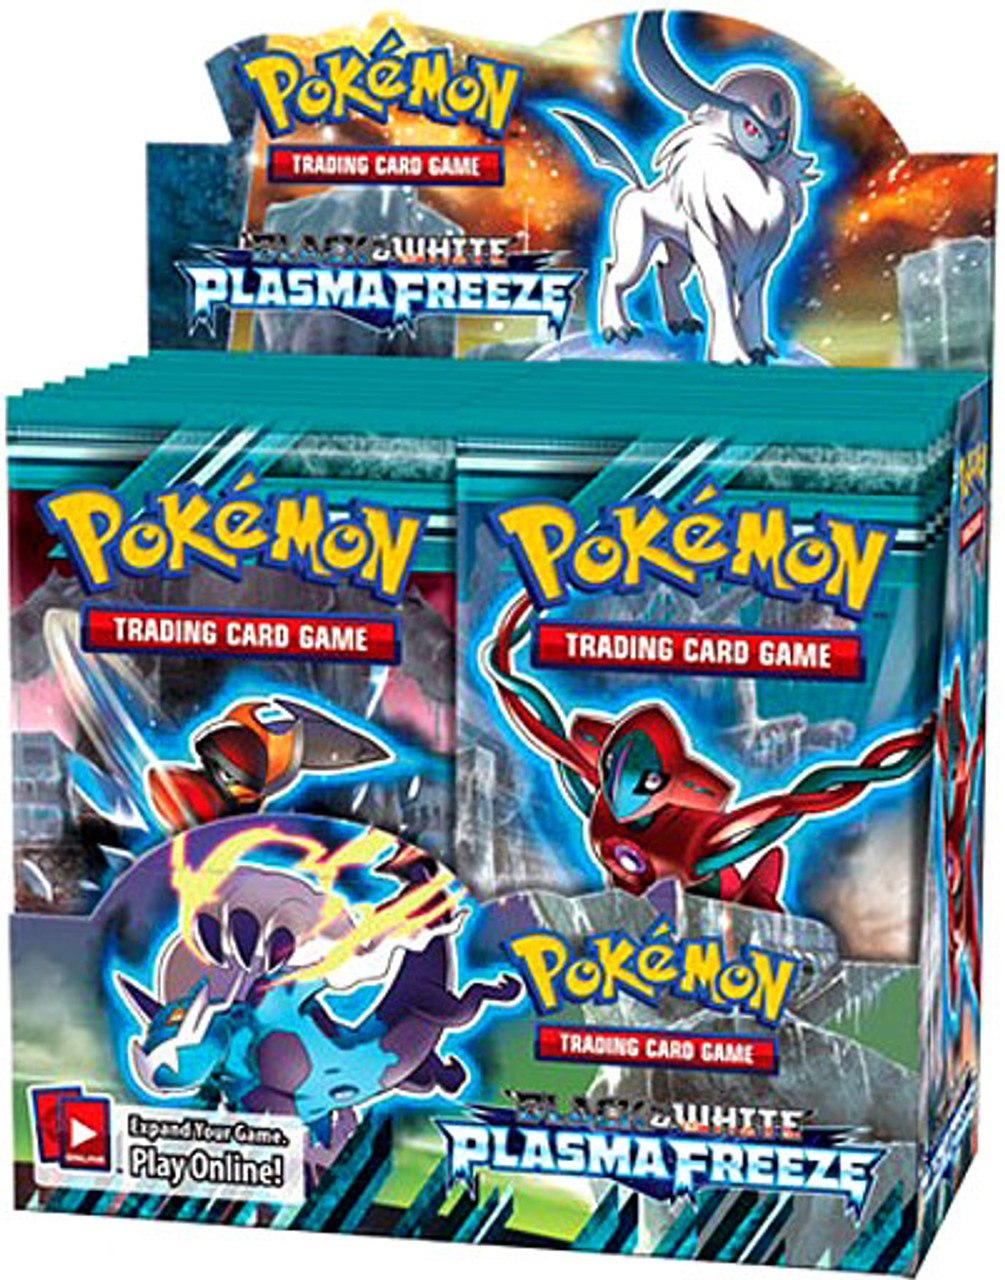 Pokemon Black & White Plasma Freeze Booster Box [36 Packs]